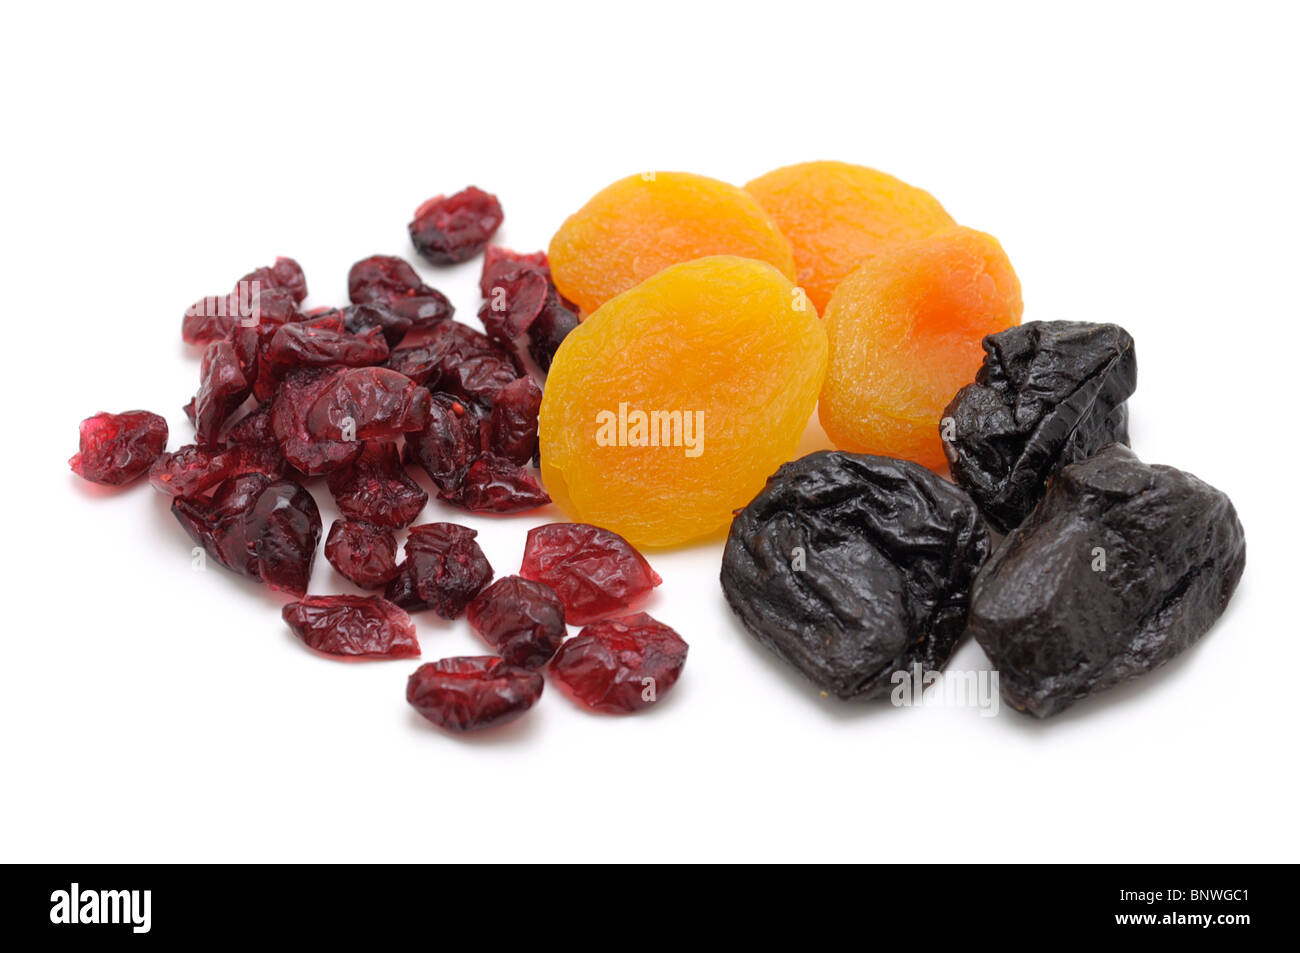 Dried Fruit (Cranberries, Apricots, Prunes) - Stock Image